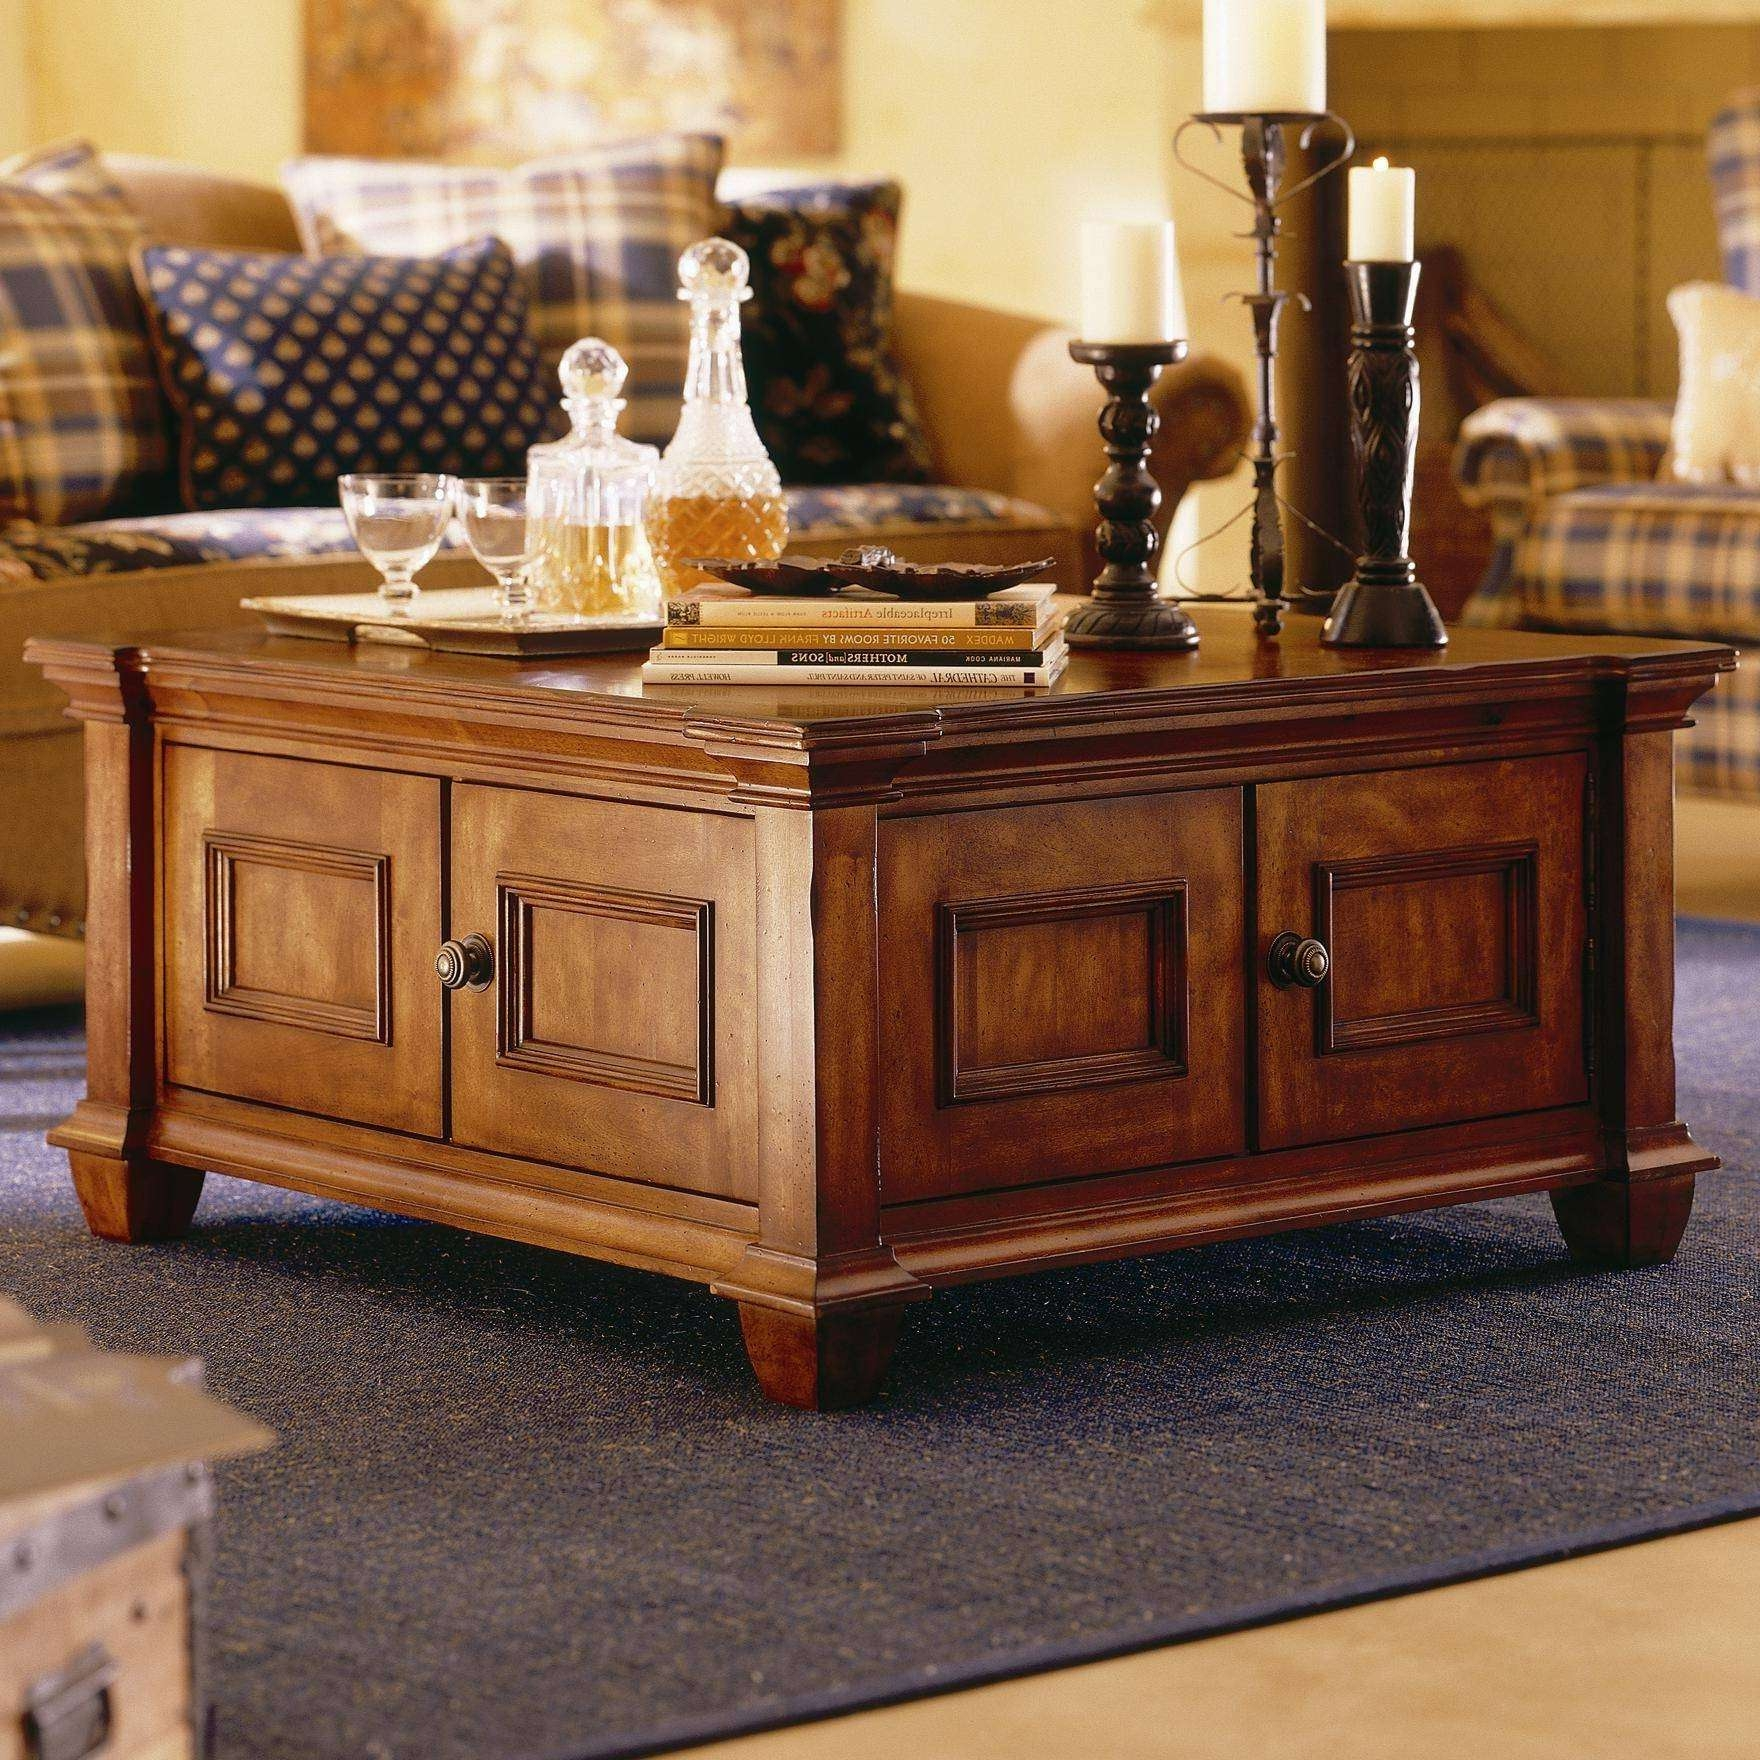 Widely Used Square Coffee Tables With Storage Cubes With Regard To Kanson Square Coffee Table With Storage Cubes • Coffee Table Ideas (View 20 of 20)